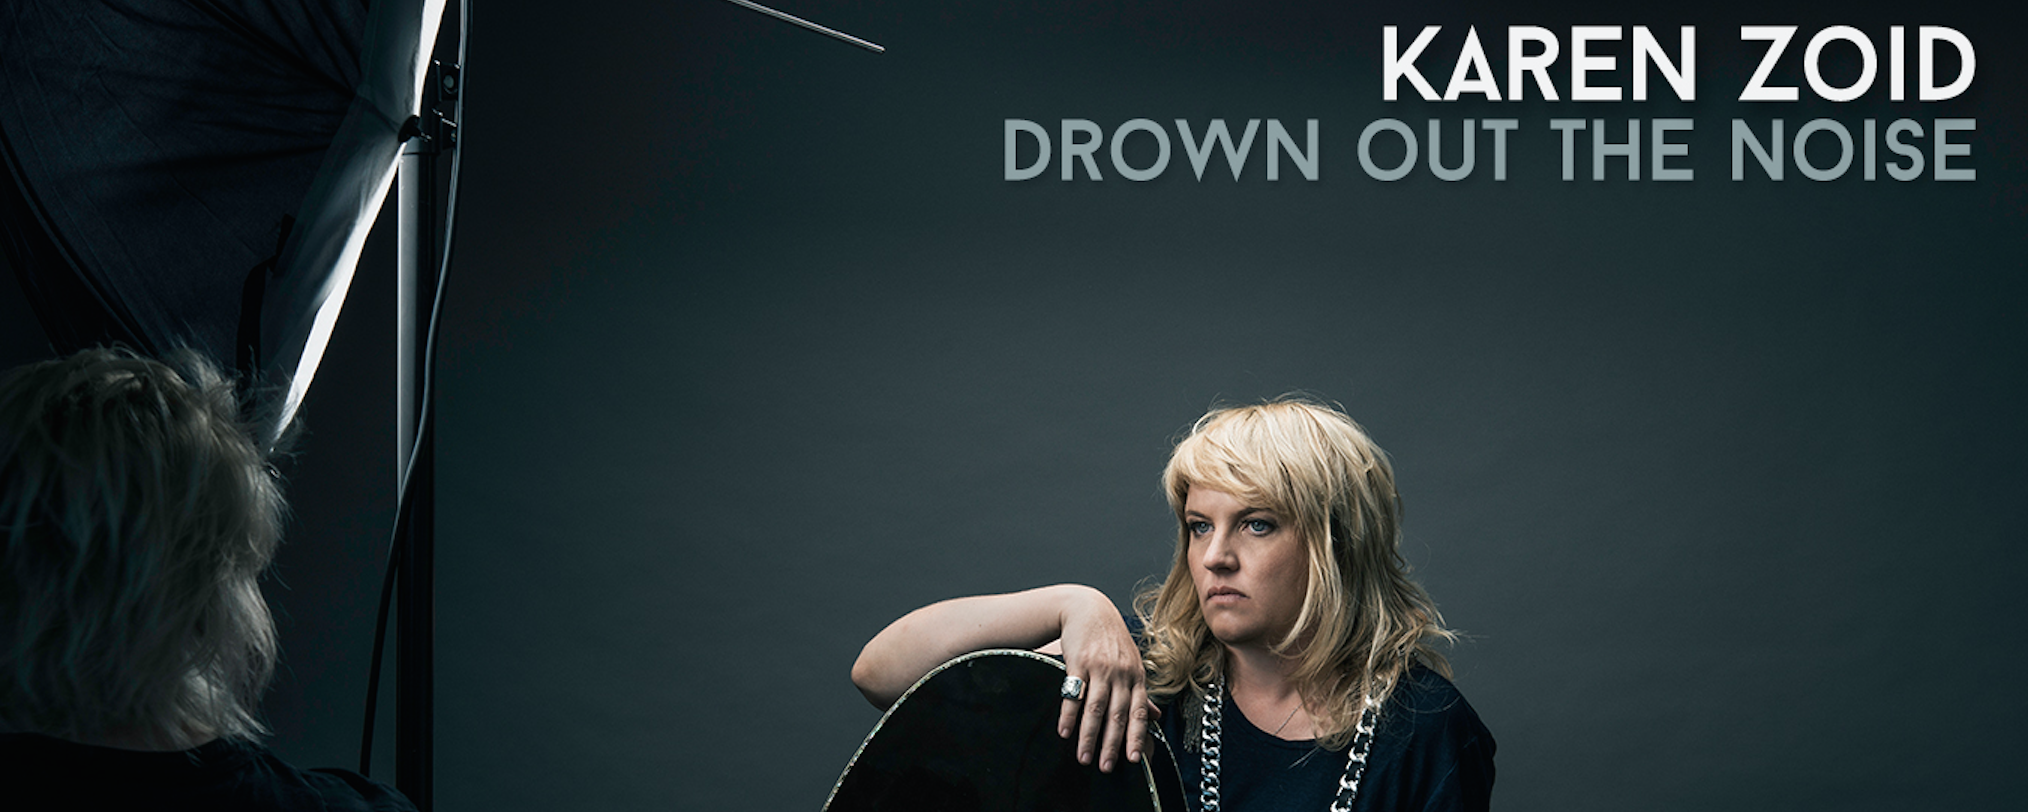 Karen zoid releases new album titled drown out the noise